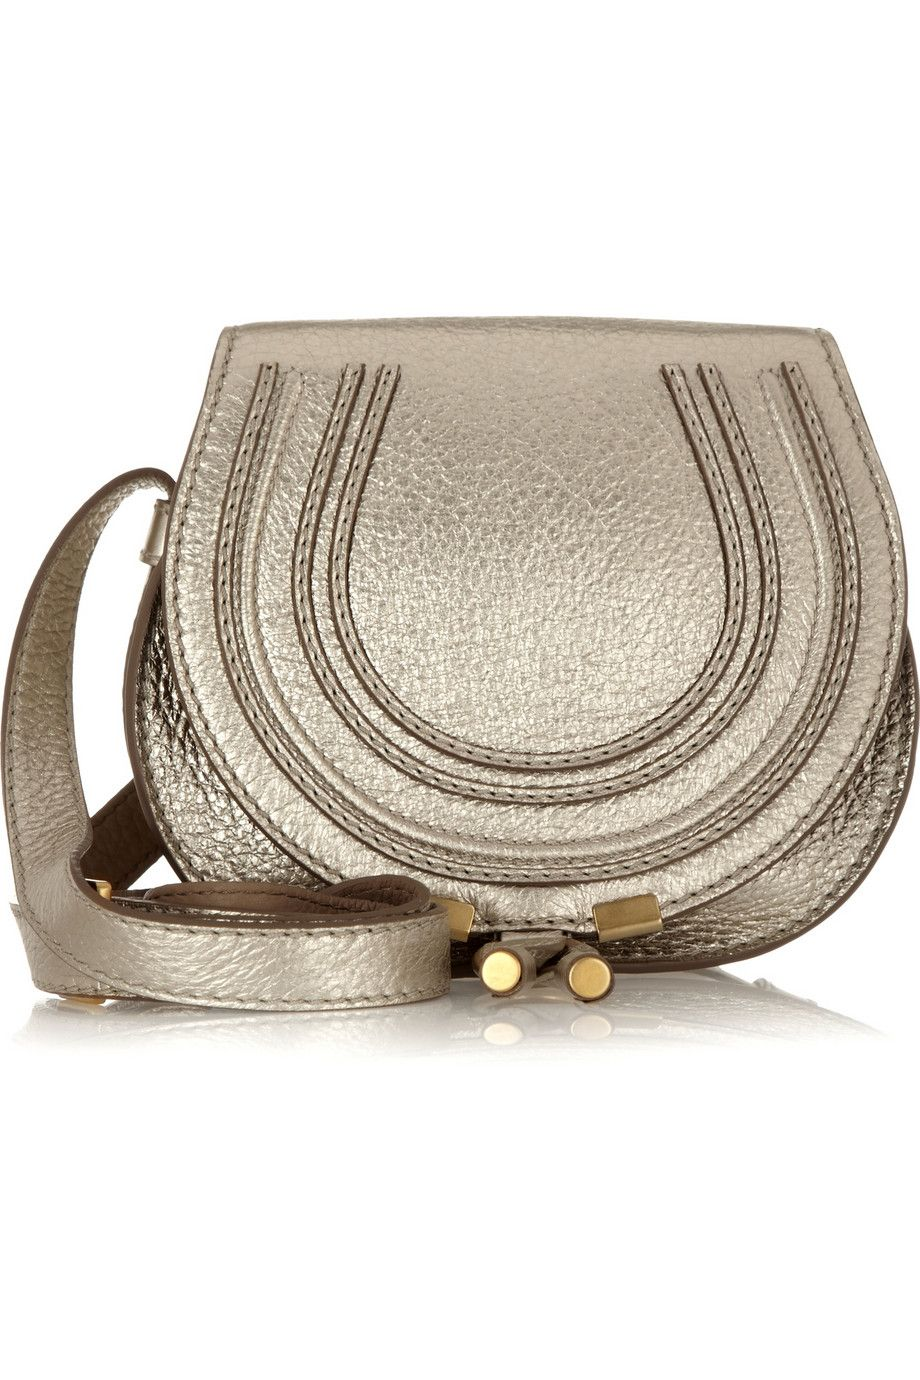 Chloé's coveted 'Marcie' bag has been reworked in gold textured-leather this season. It features the label's unique topstitching and will carry all your essentials without feeling bulky. There's even a hidden front pocket that's ideally sized for your cell.